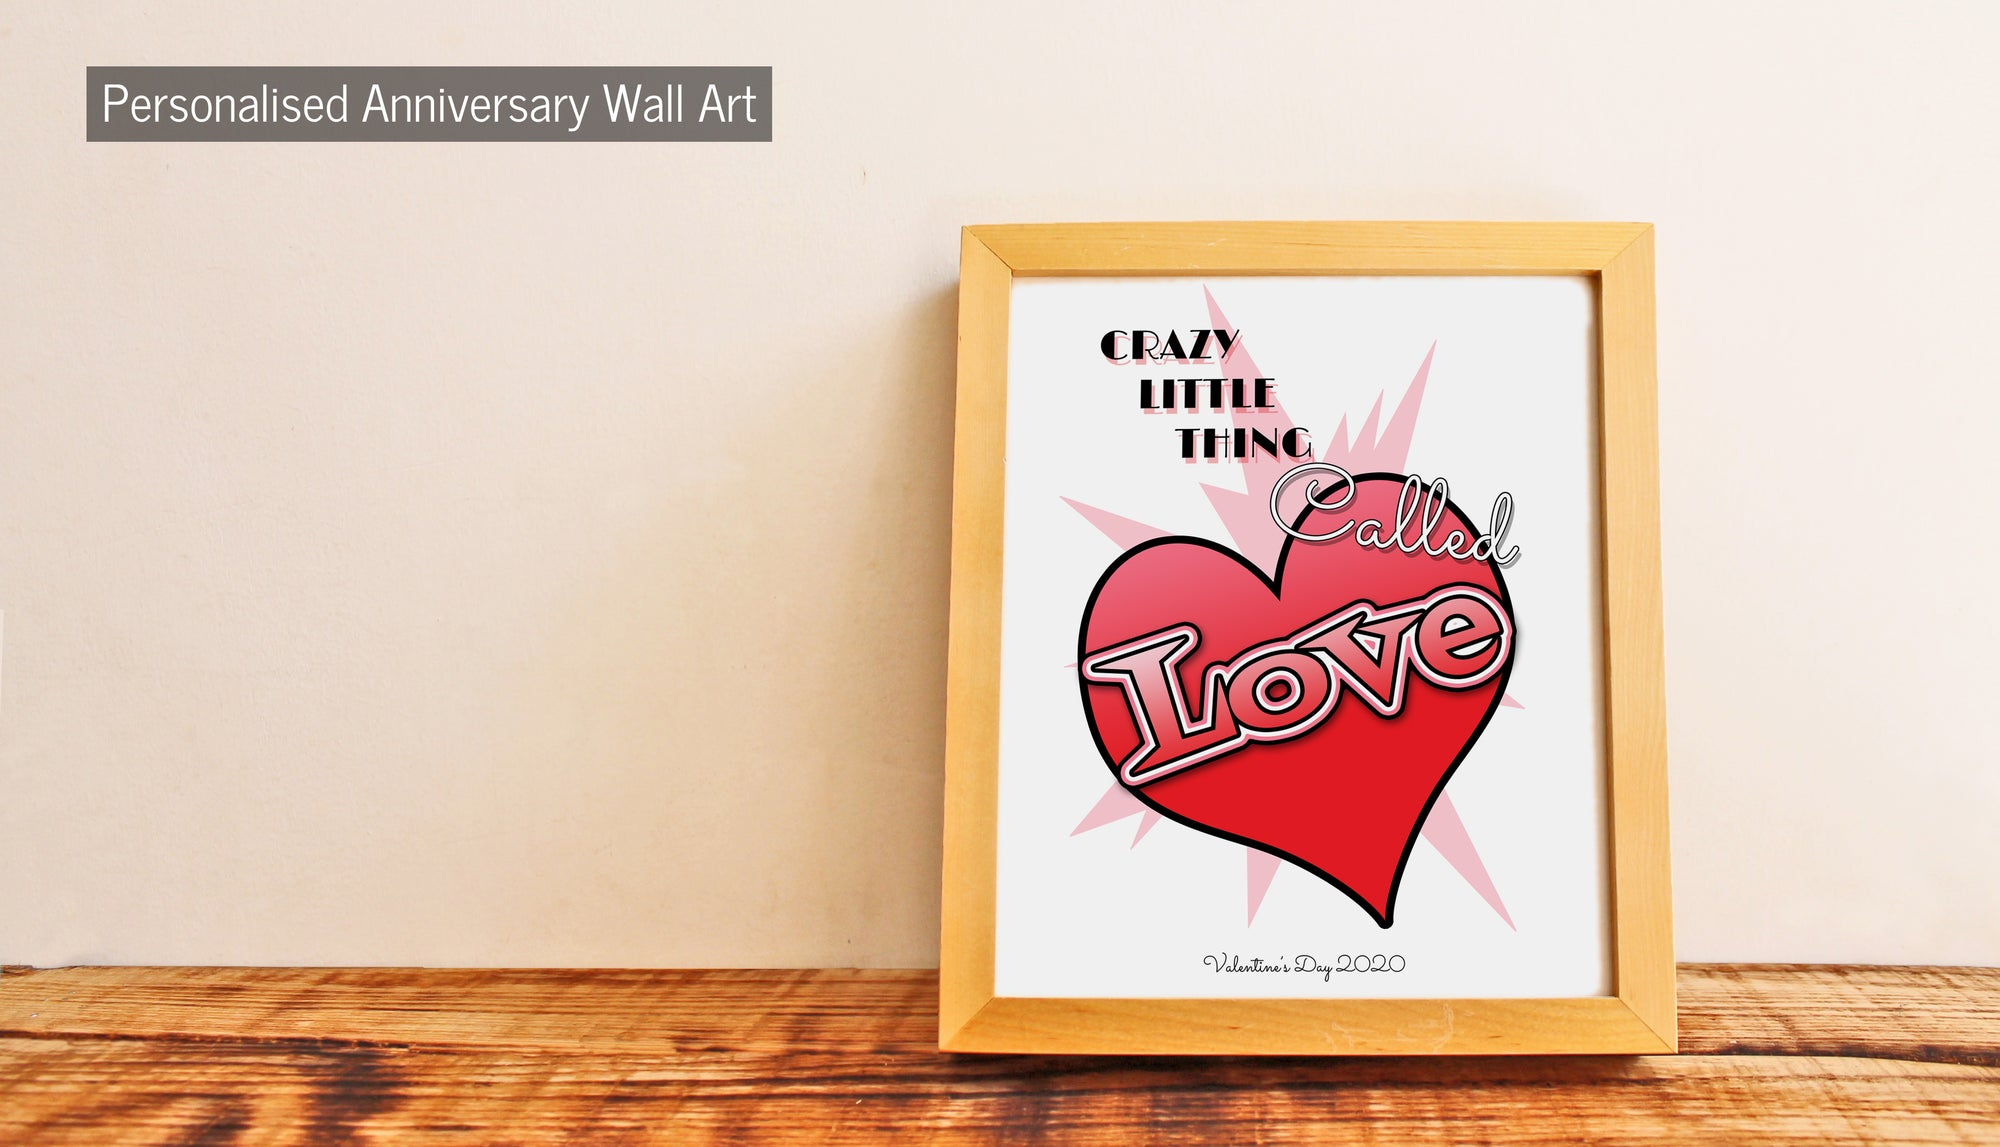 Personalised Anniversary Wall Art